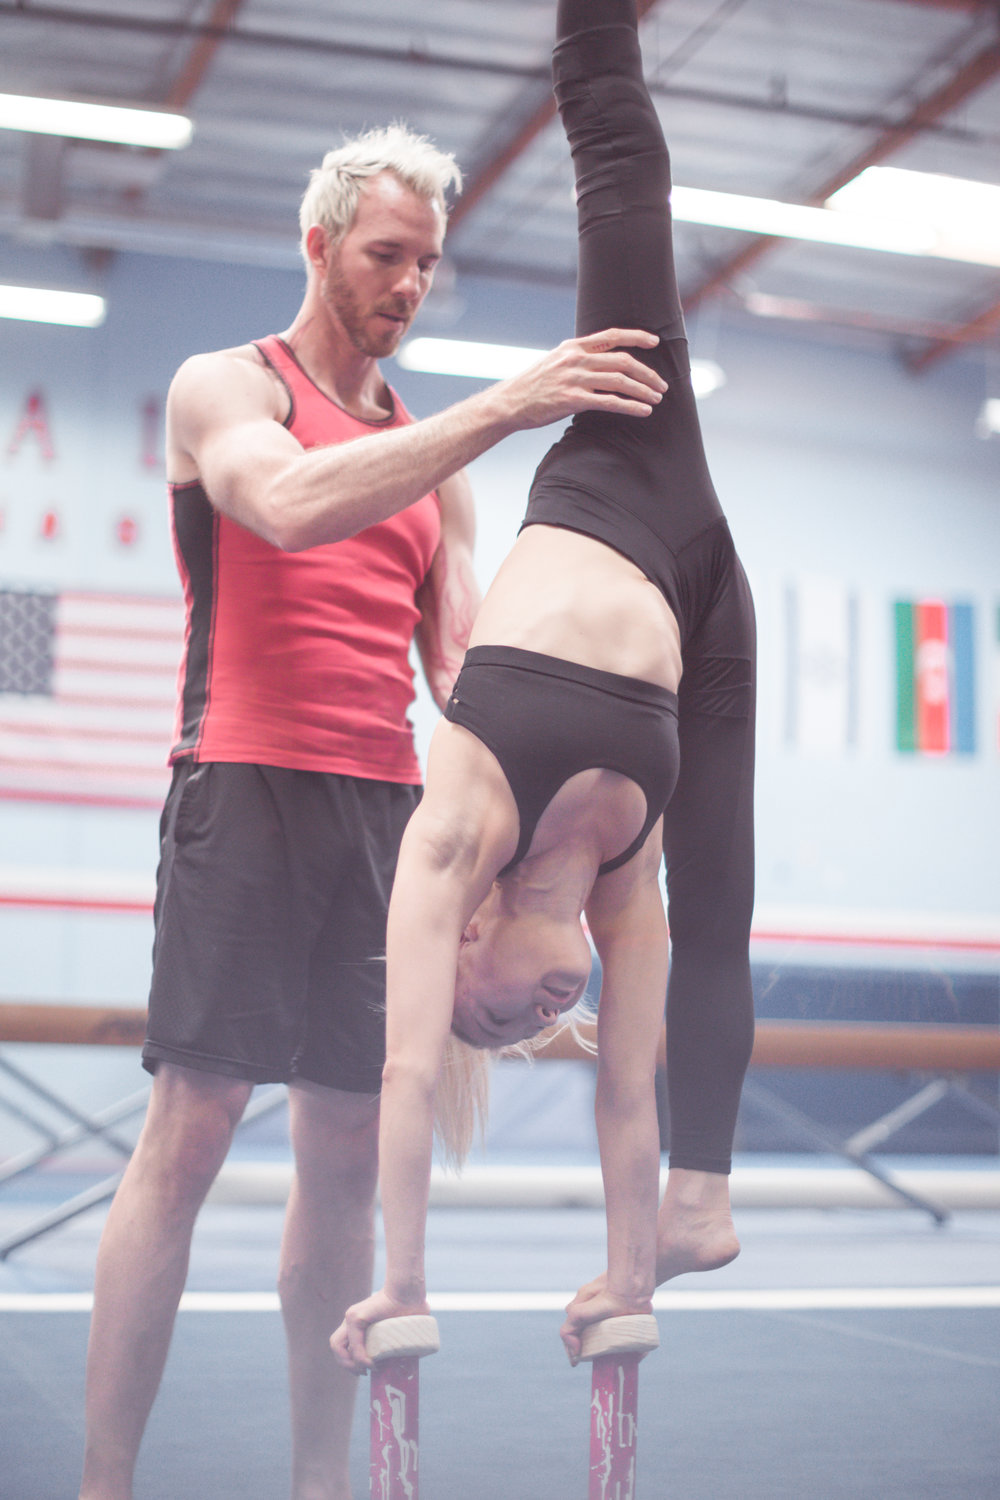 ELITE PERFORMANCE TEAM MEMBER, MARI SAITO, GETS ADJUSTED BY ACROARMY'S HEAD COACH, ARTHUR DAVIS III.